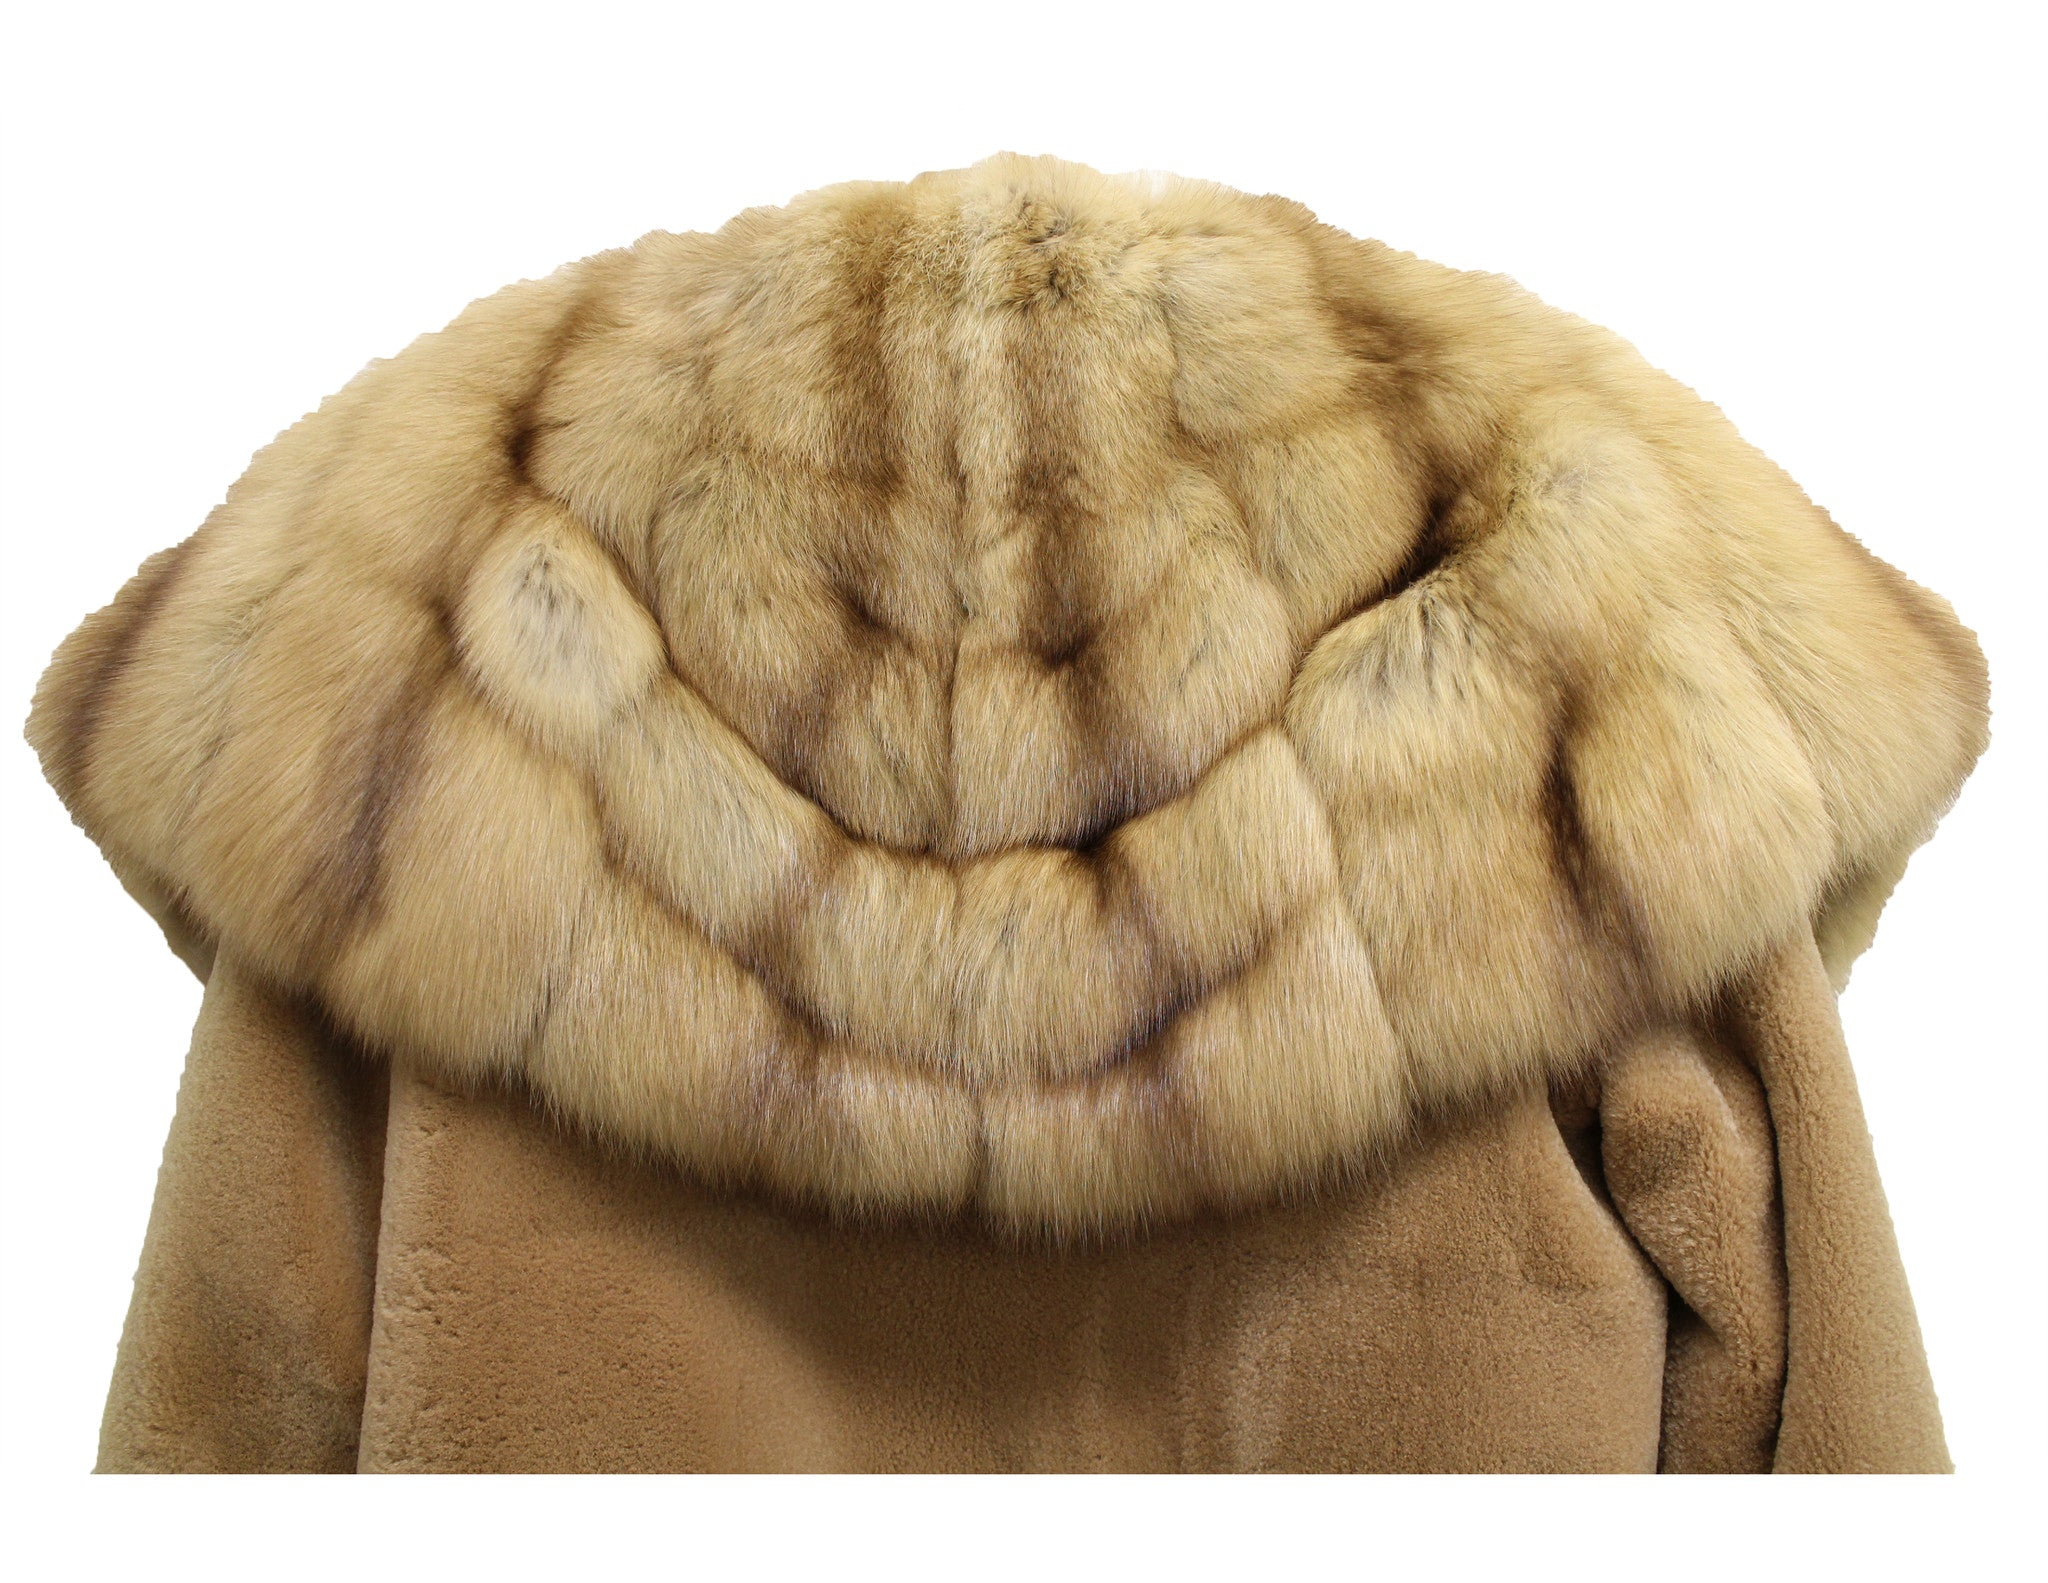 J. Mendel Sable and Beaver Fur Reversible Coat w/Hood (Size M) - Encore Consignment - 8